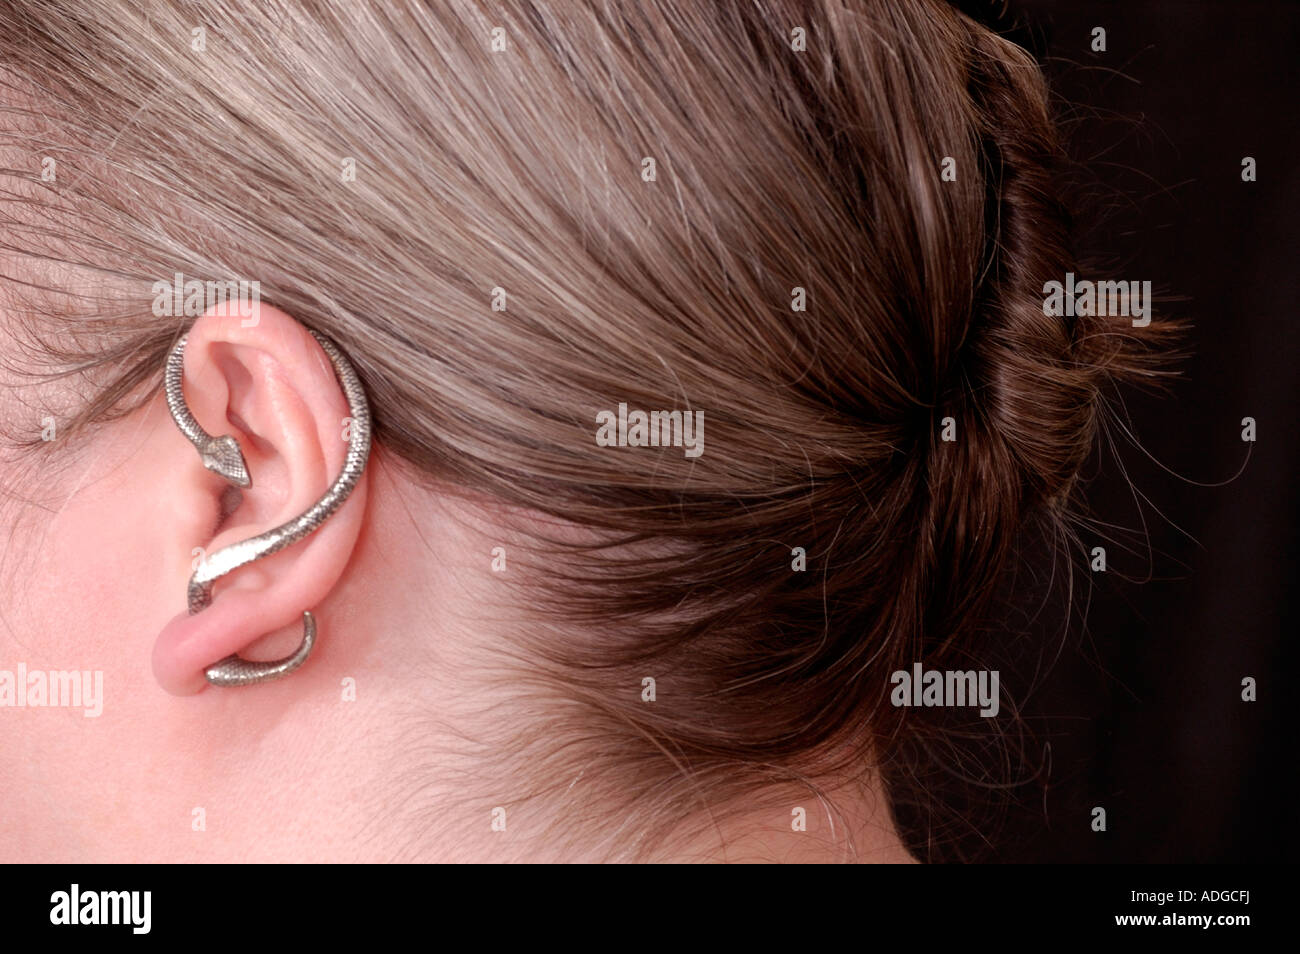 Girl wearing snake earcuff with hair in a french twist - Stock Image